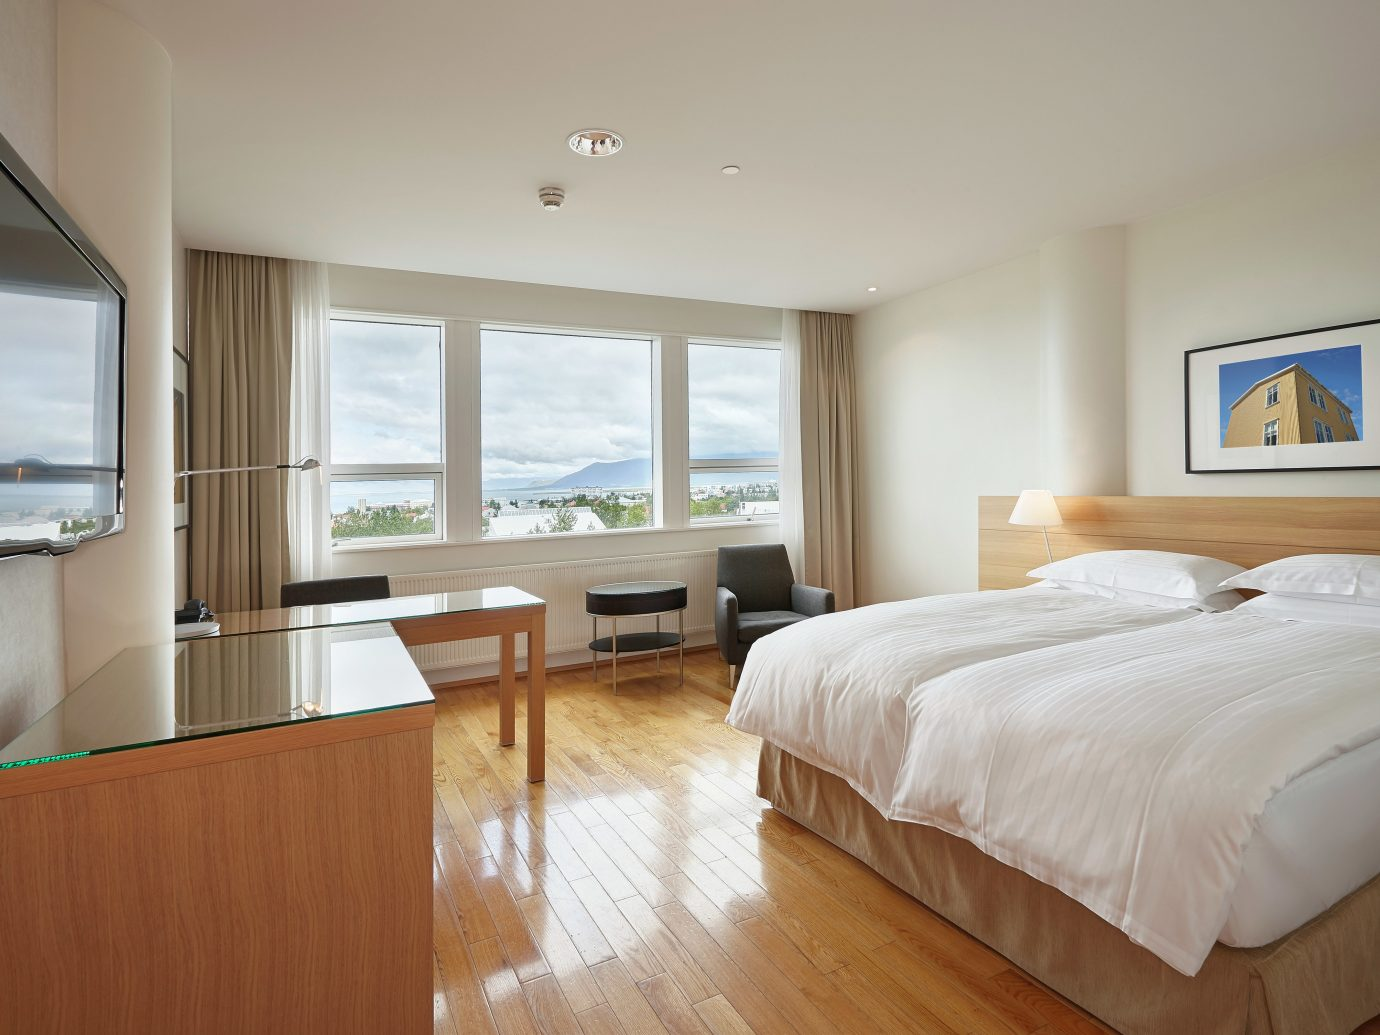 Bedroom Classic Hotels Iceland Modern Scenic views Waterfront bed indoor wall floor window ceiling room property hotel real estate estate scene home hardwood cottage interior design Suite apartment wood